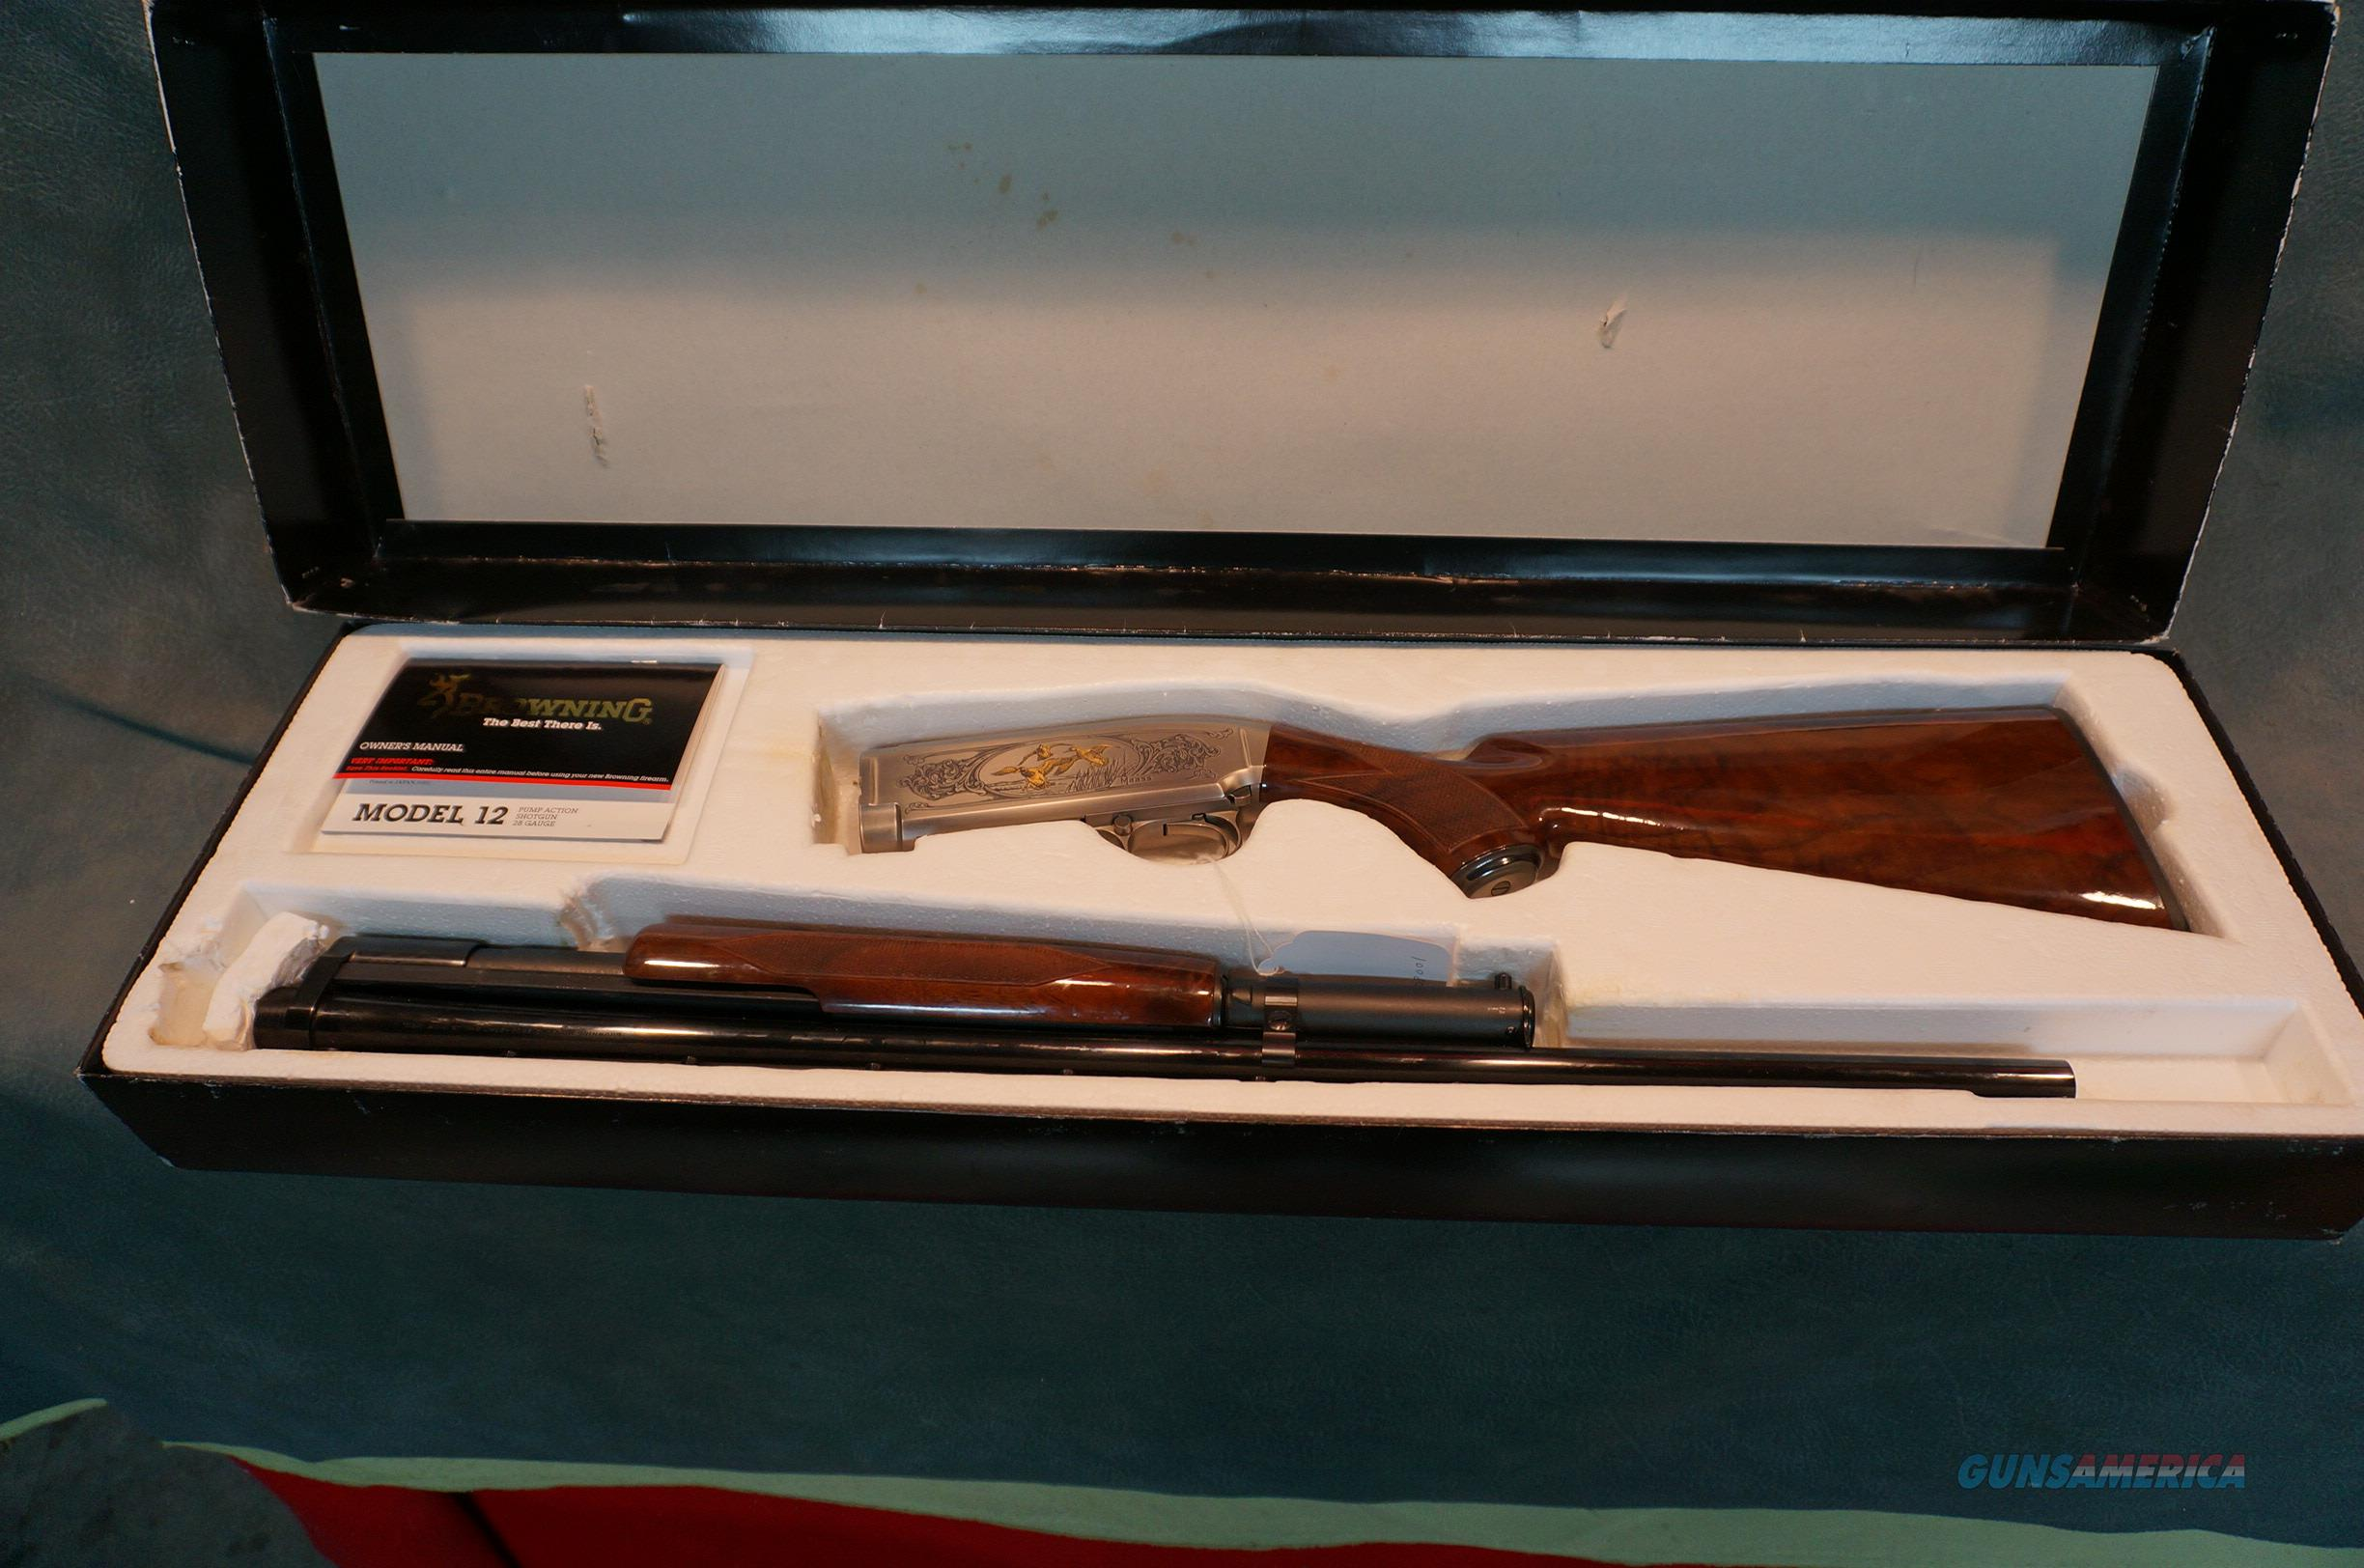 Browning Model 12 28Ga Ducks Unlimited High Grade NIB  Guns > Shotguns > Browning Shotguns > Pump Action > Hunting